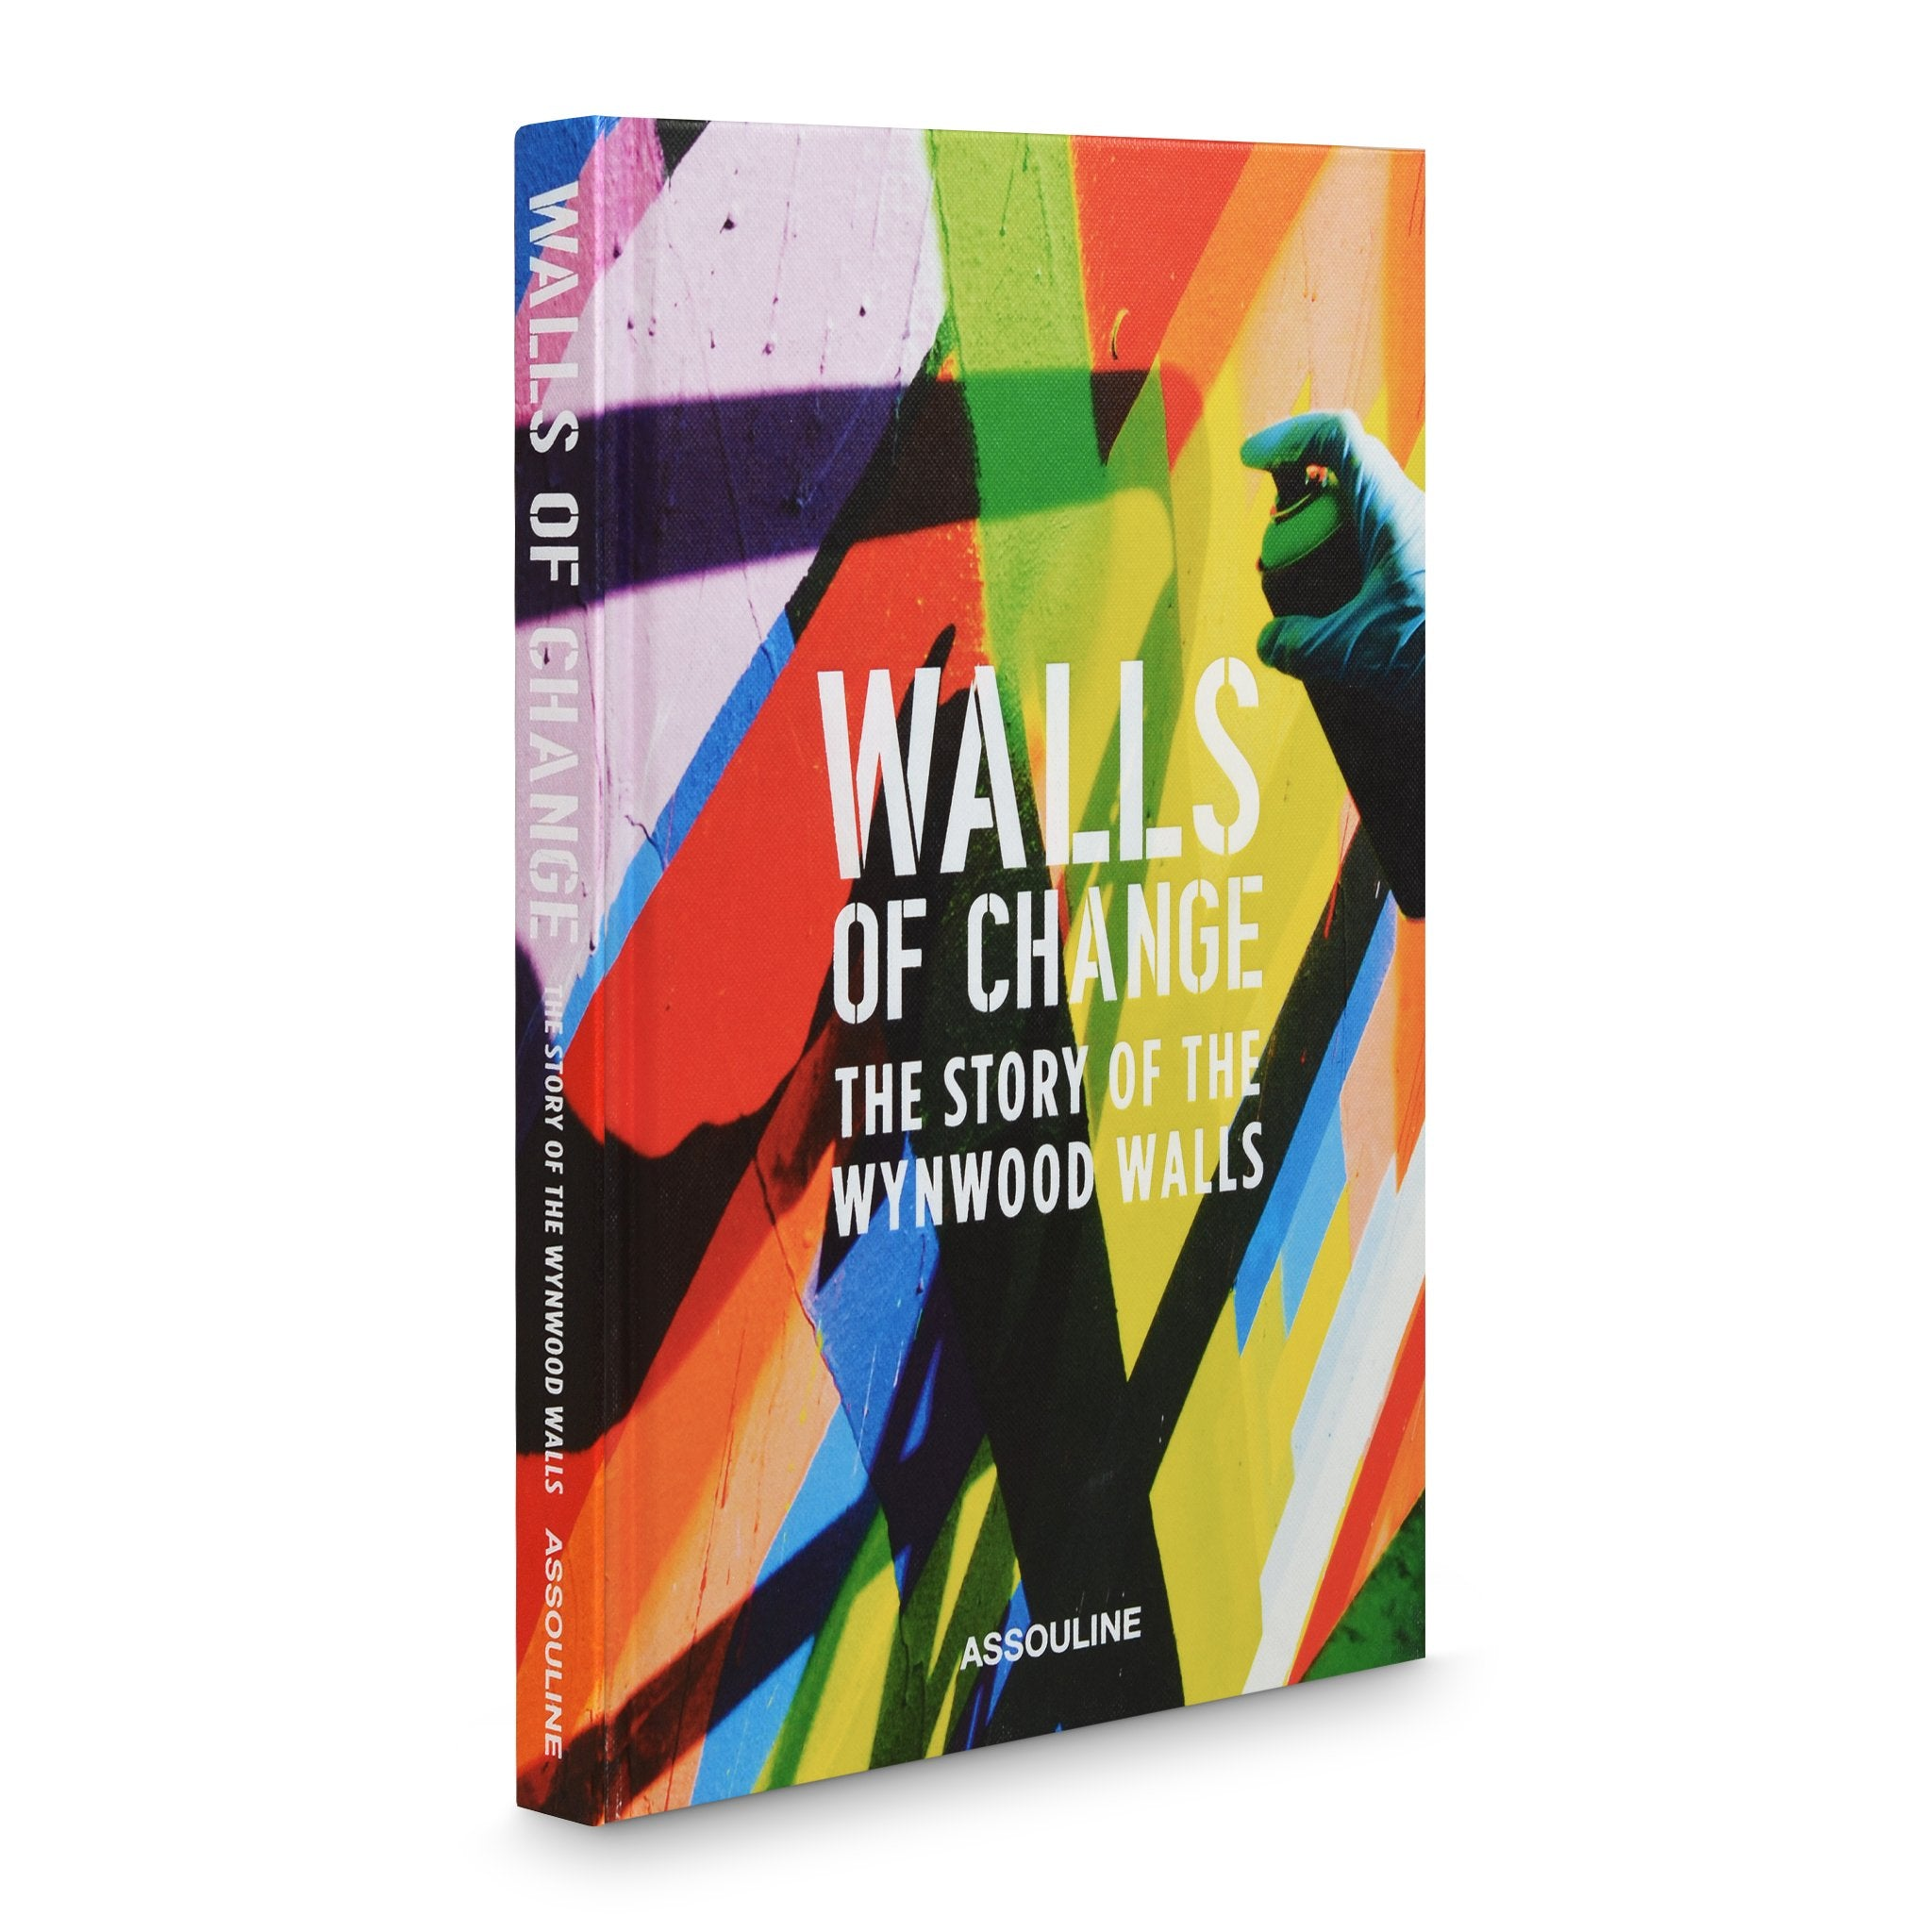 Walls of Change: The Story of the Wynwood Walls